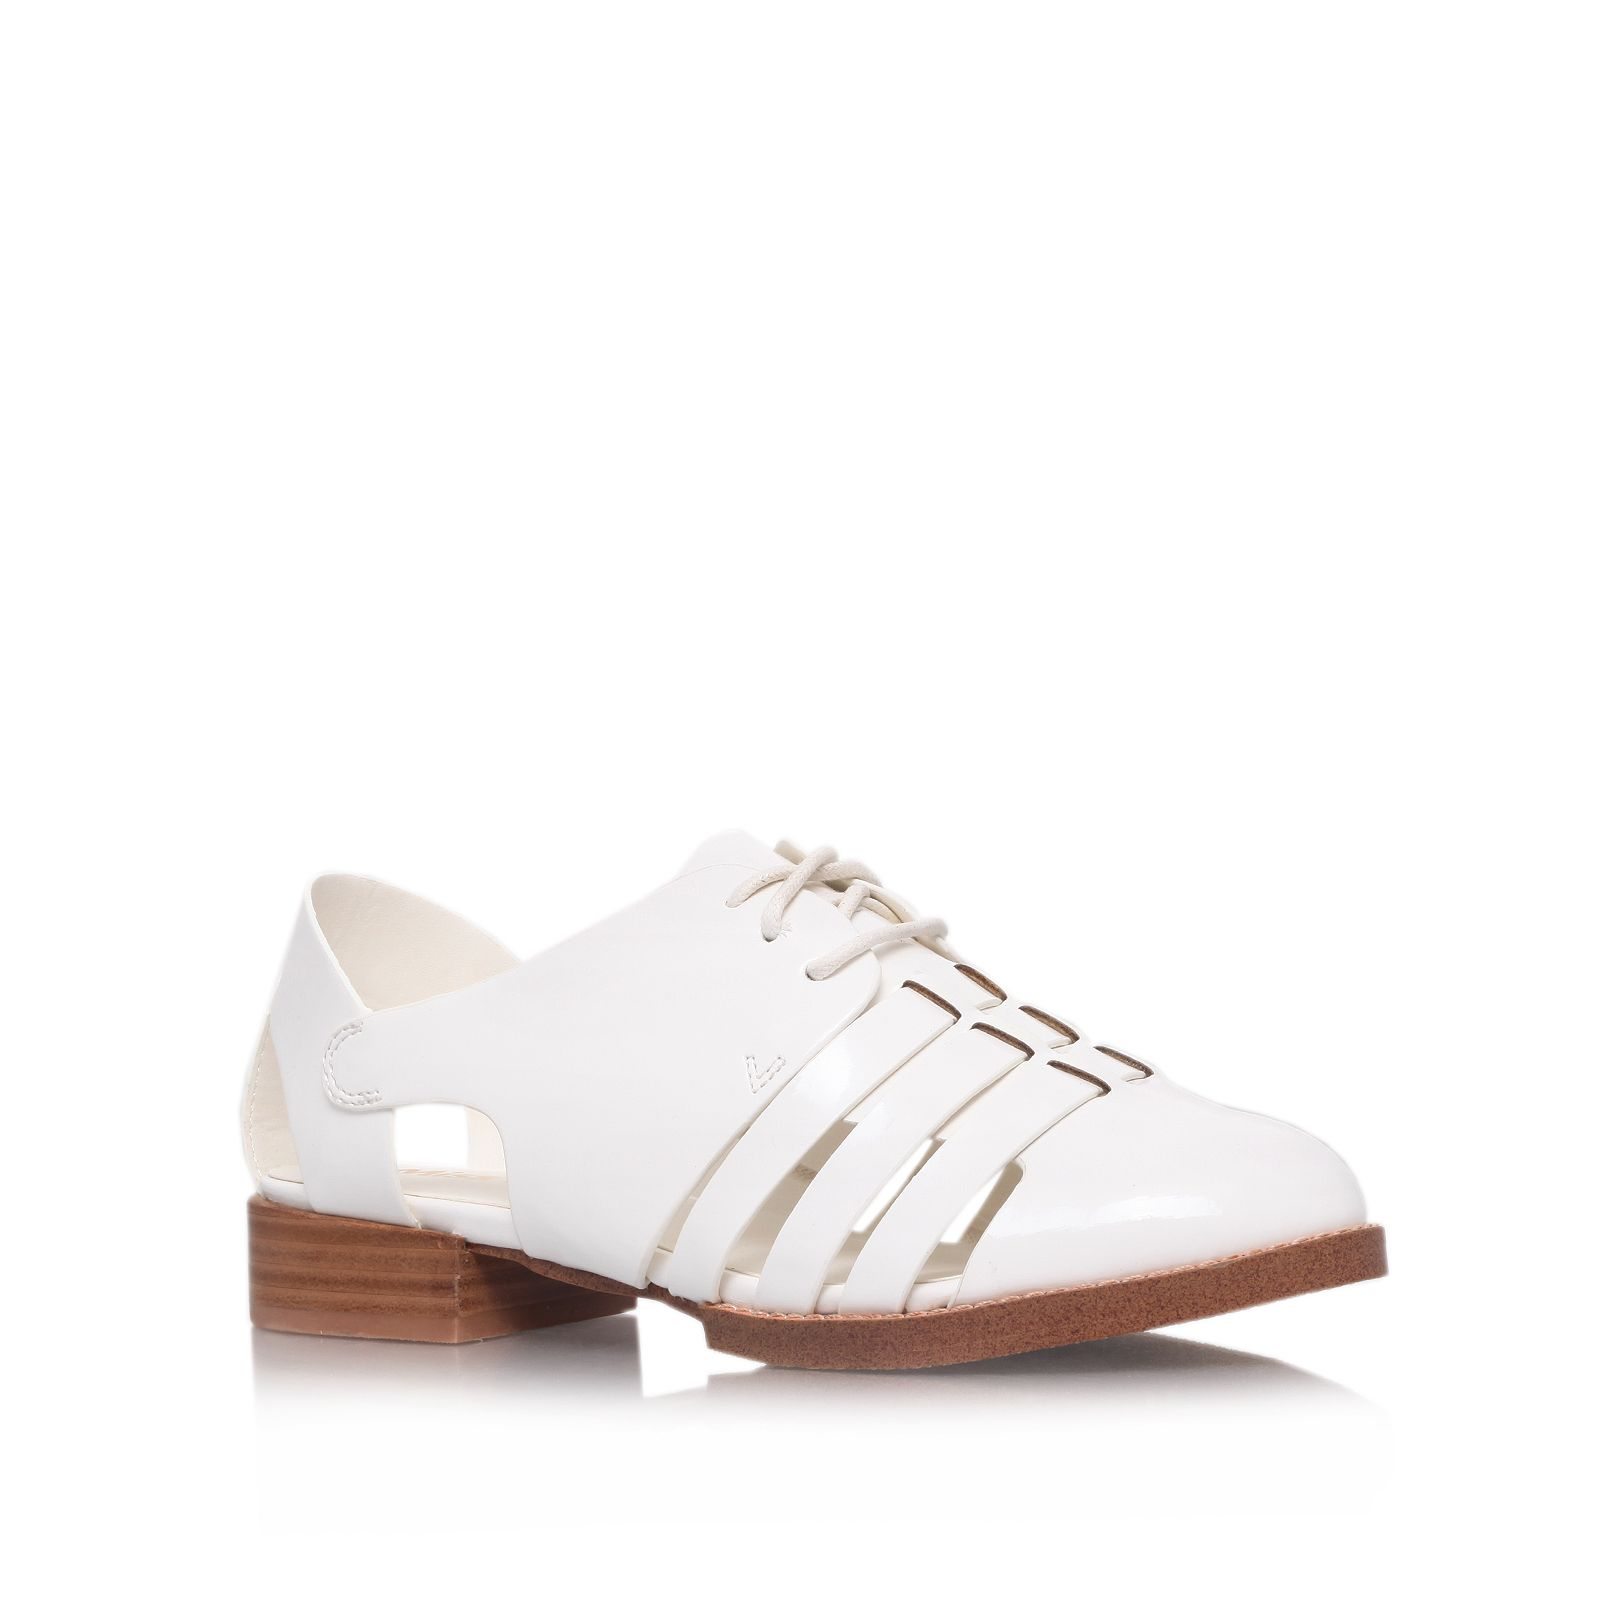 Noah flat lace-up shoes